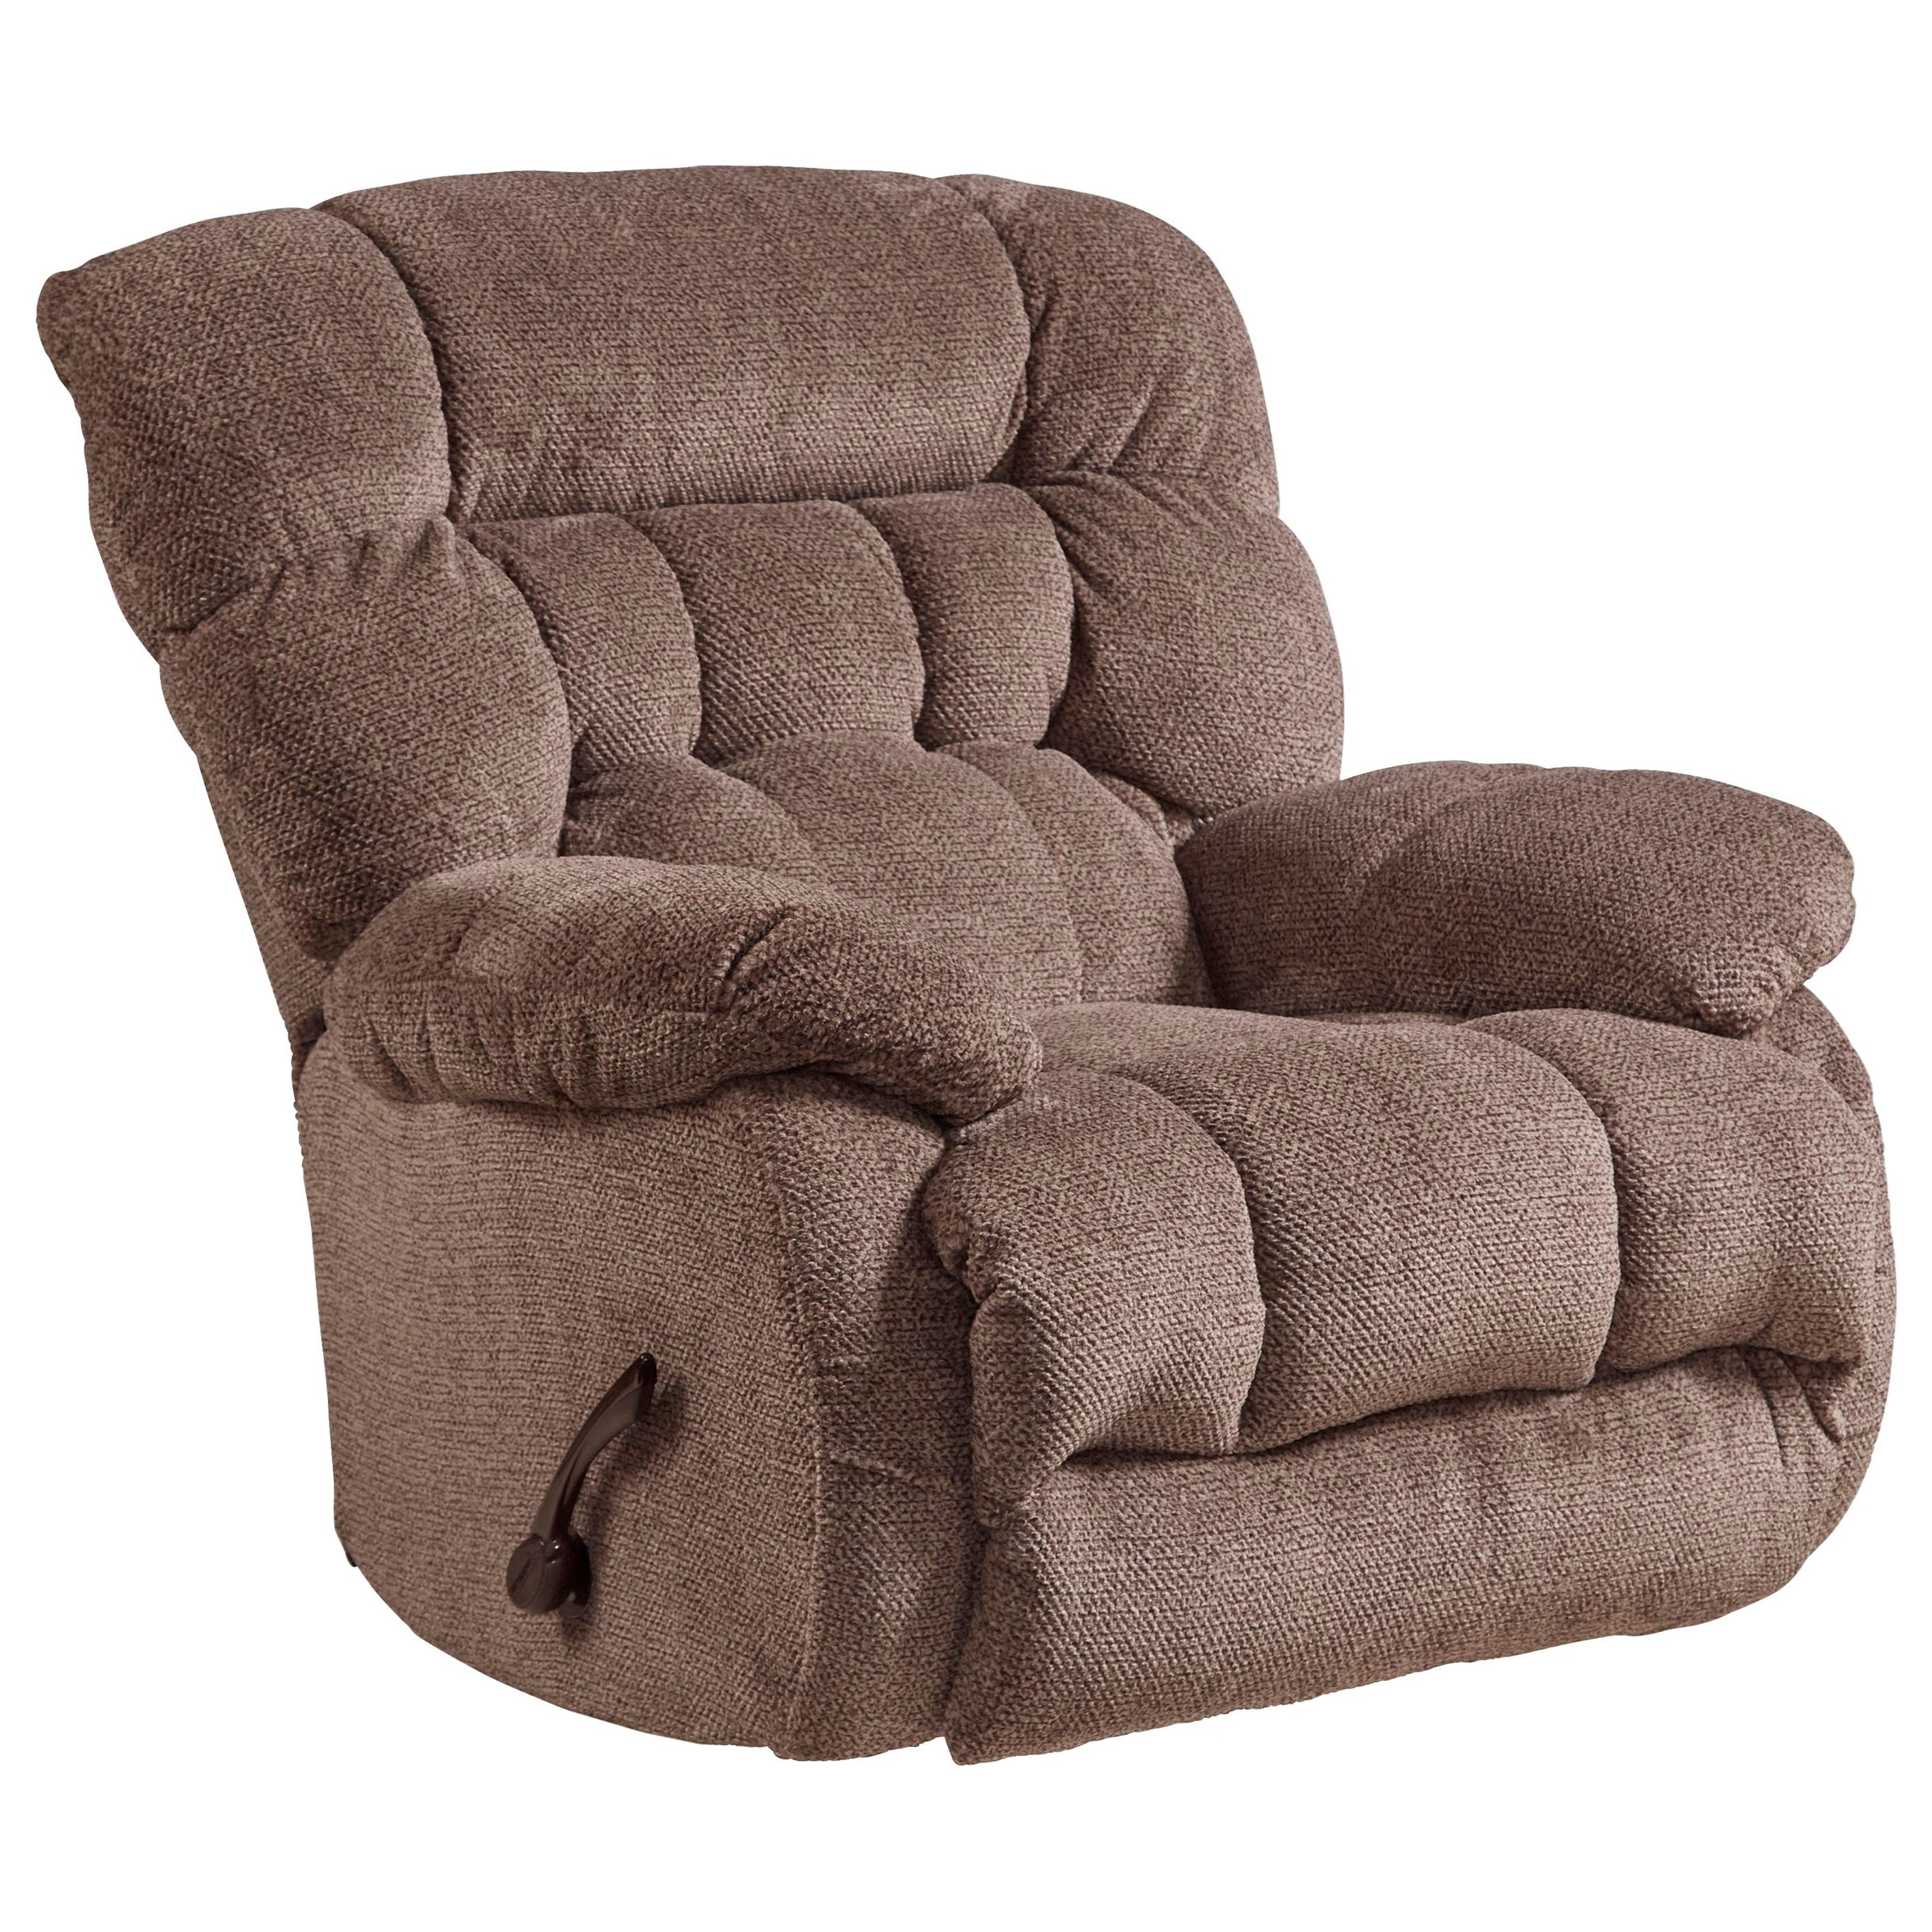 Catnapper Motion Chairs And Recliners Daly Swivel Glider Recliner Regarding Gibson Swivel Cuddler Chairs (View 5 of 20)